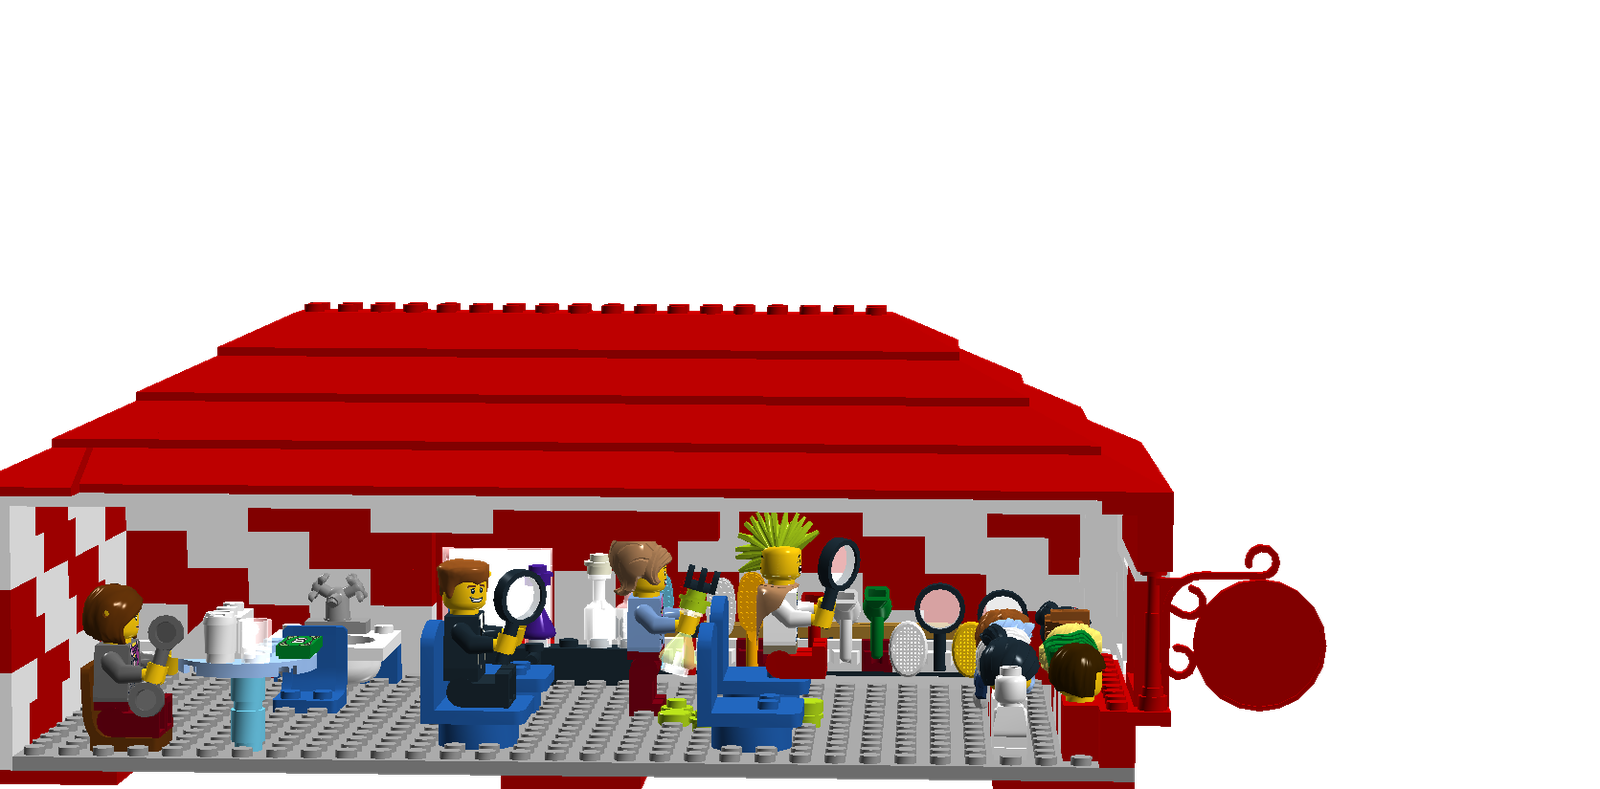 Building clipart barber shop. Lego ideas product the